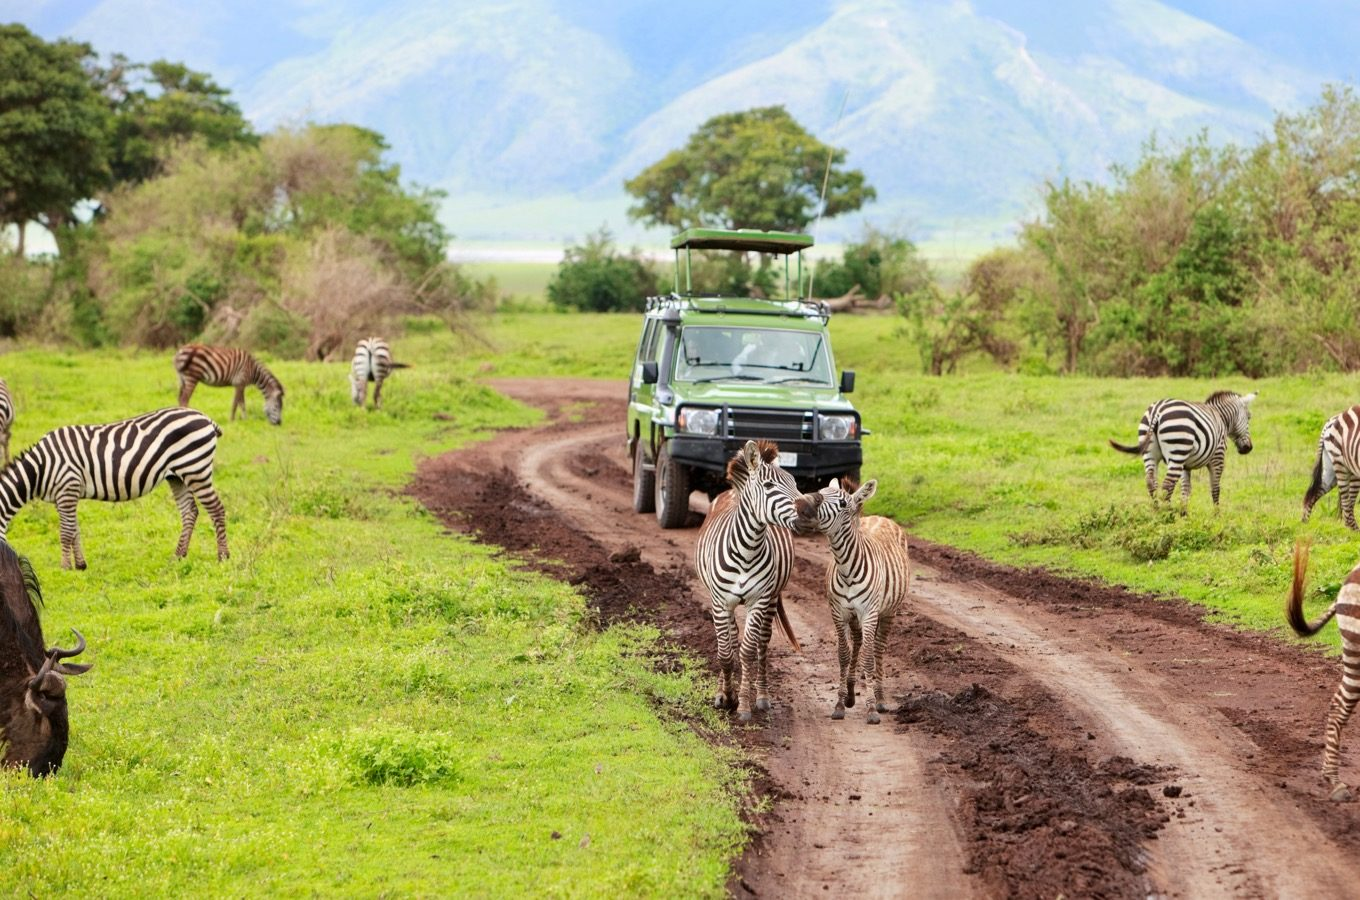 safari-through-the-national-parks-lake-manyara-serengeti-ngorongoro-deoadventure